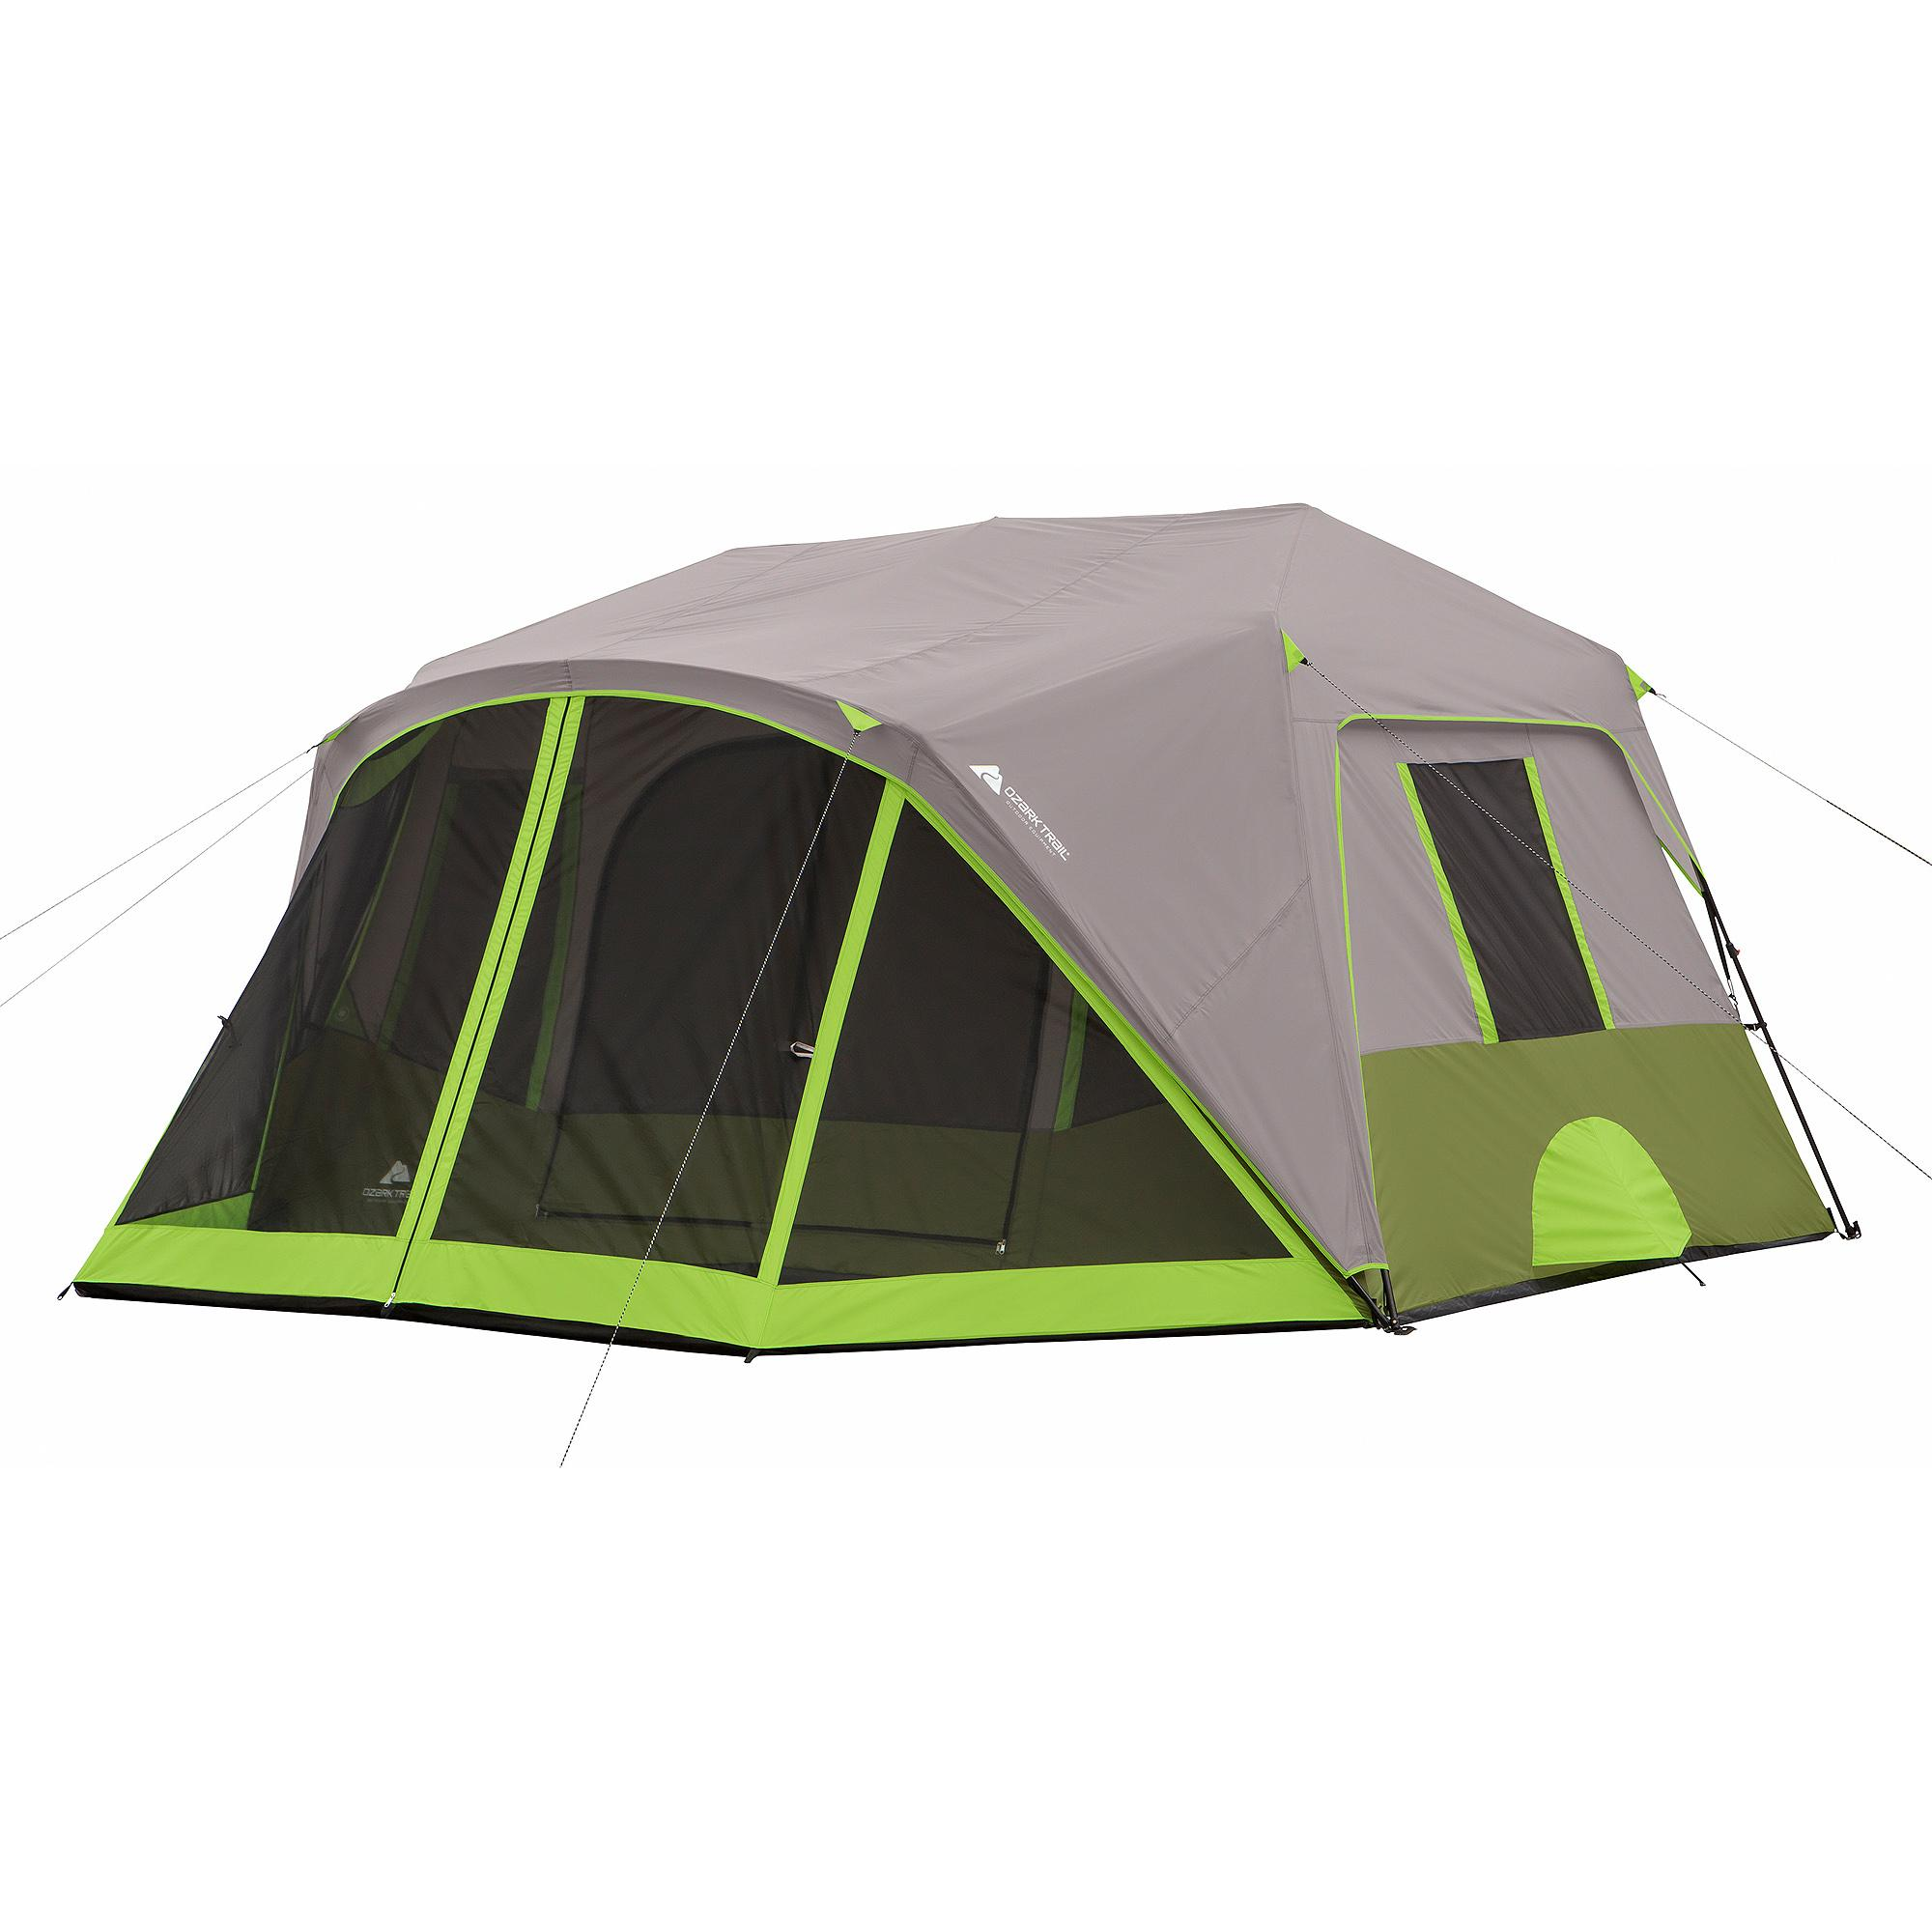 Two Person Tent : Ozark trail person room instant cabin tent with screen